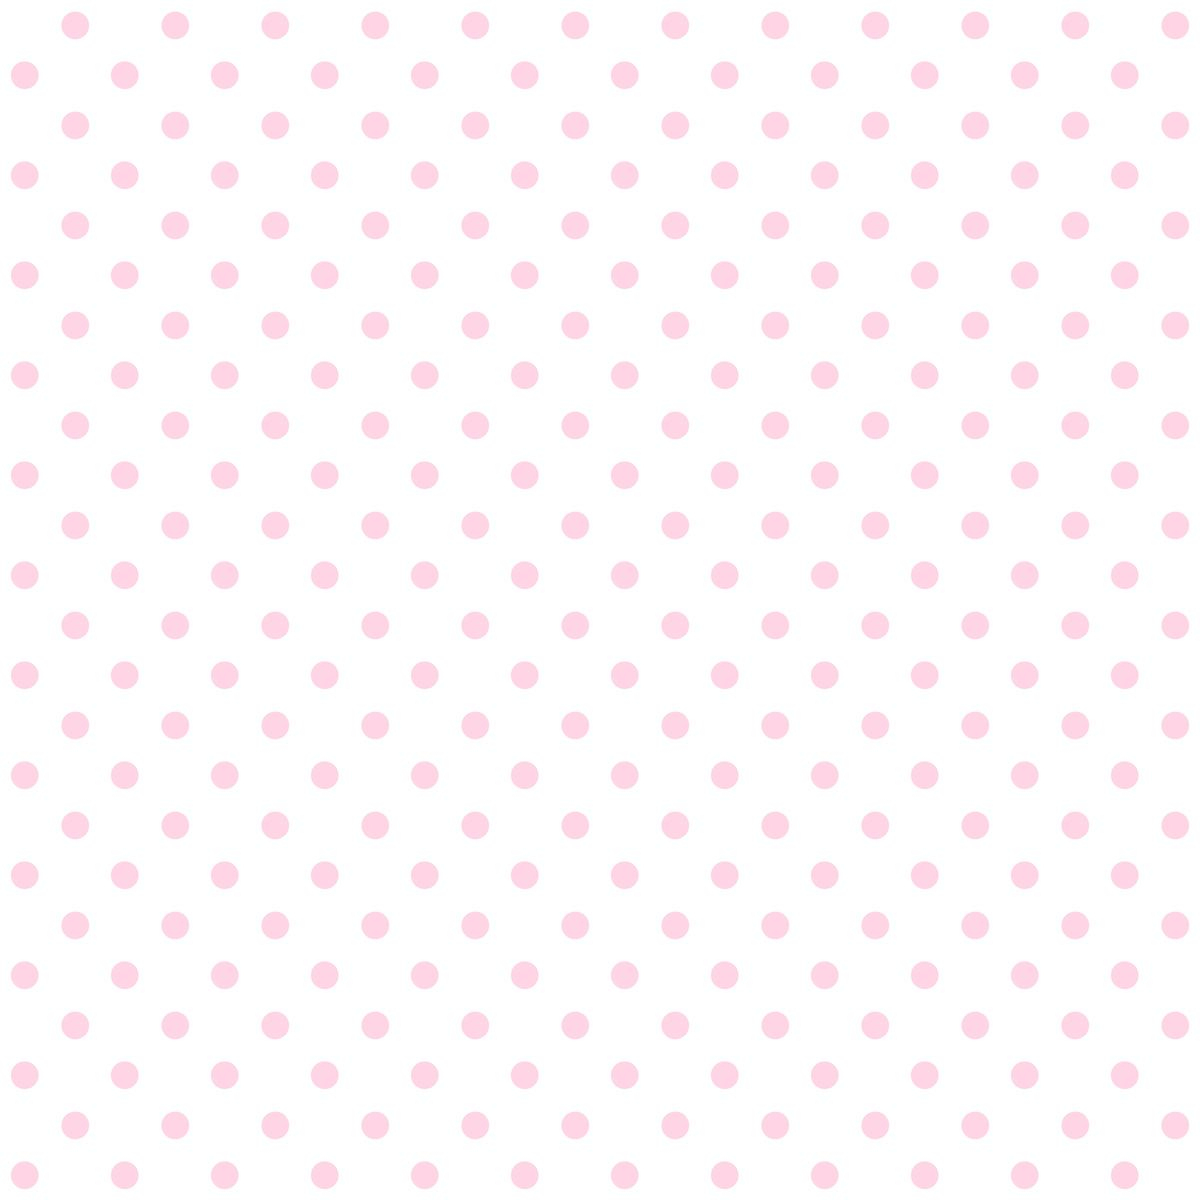 Free Digital Polka Dot Scrapbooking Papers - Ausdruckbare - Free Printable Pink Polka Dot Paper